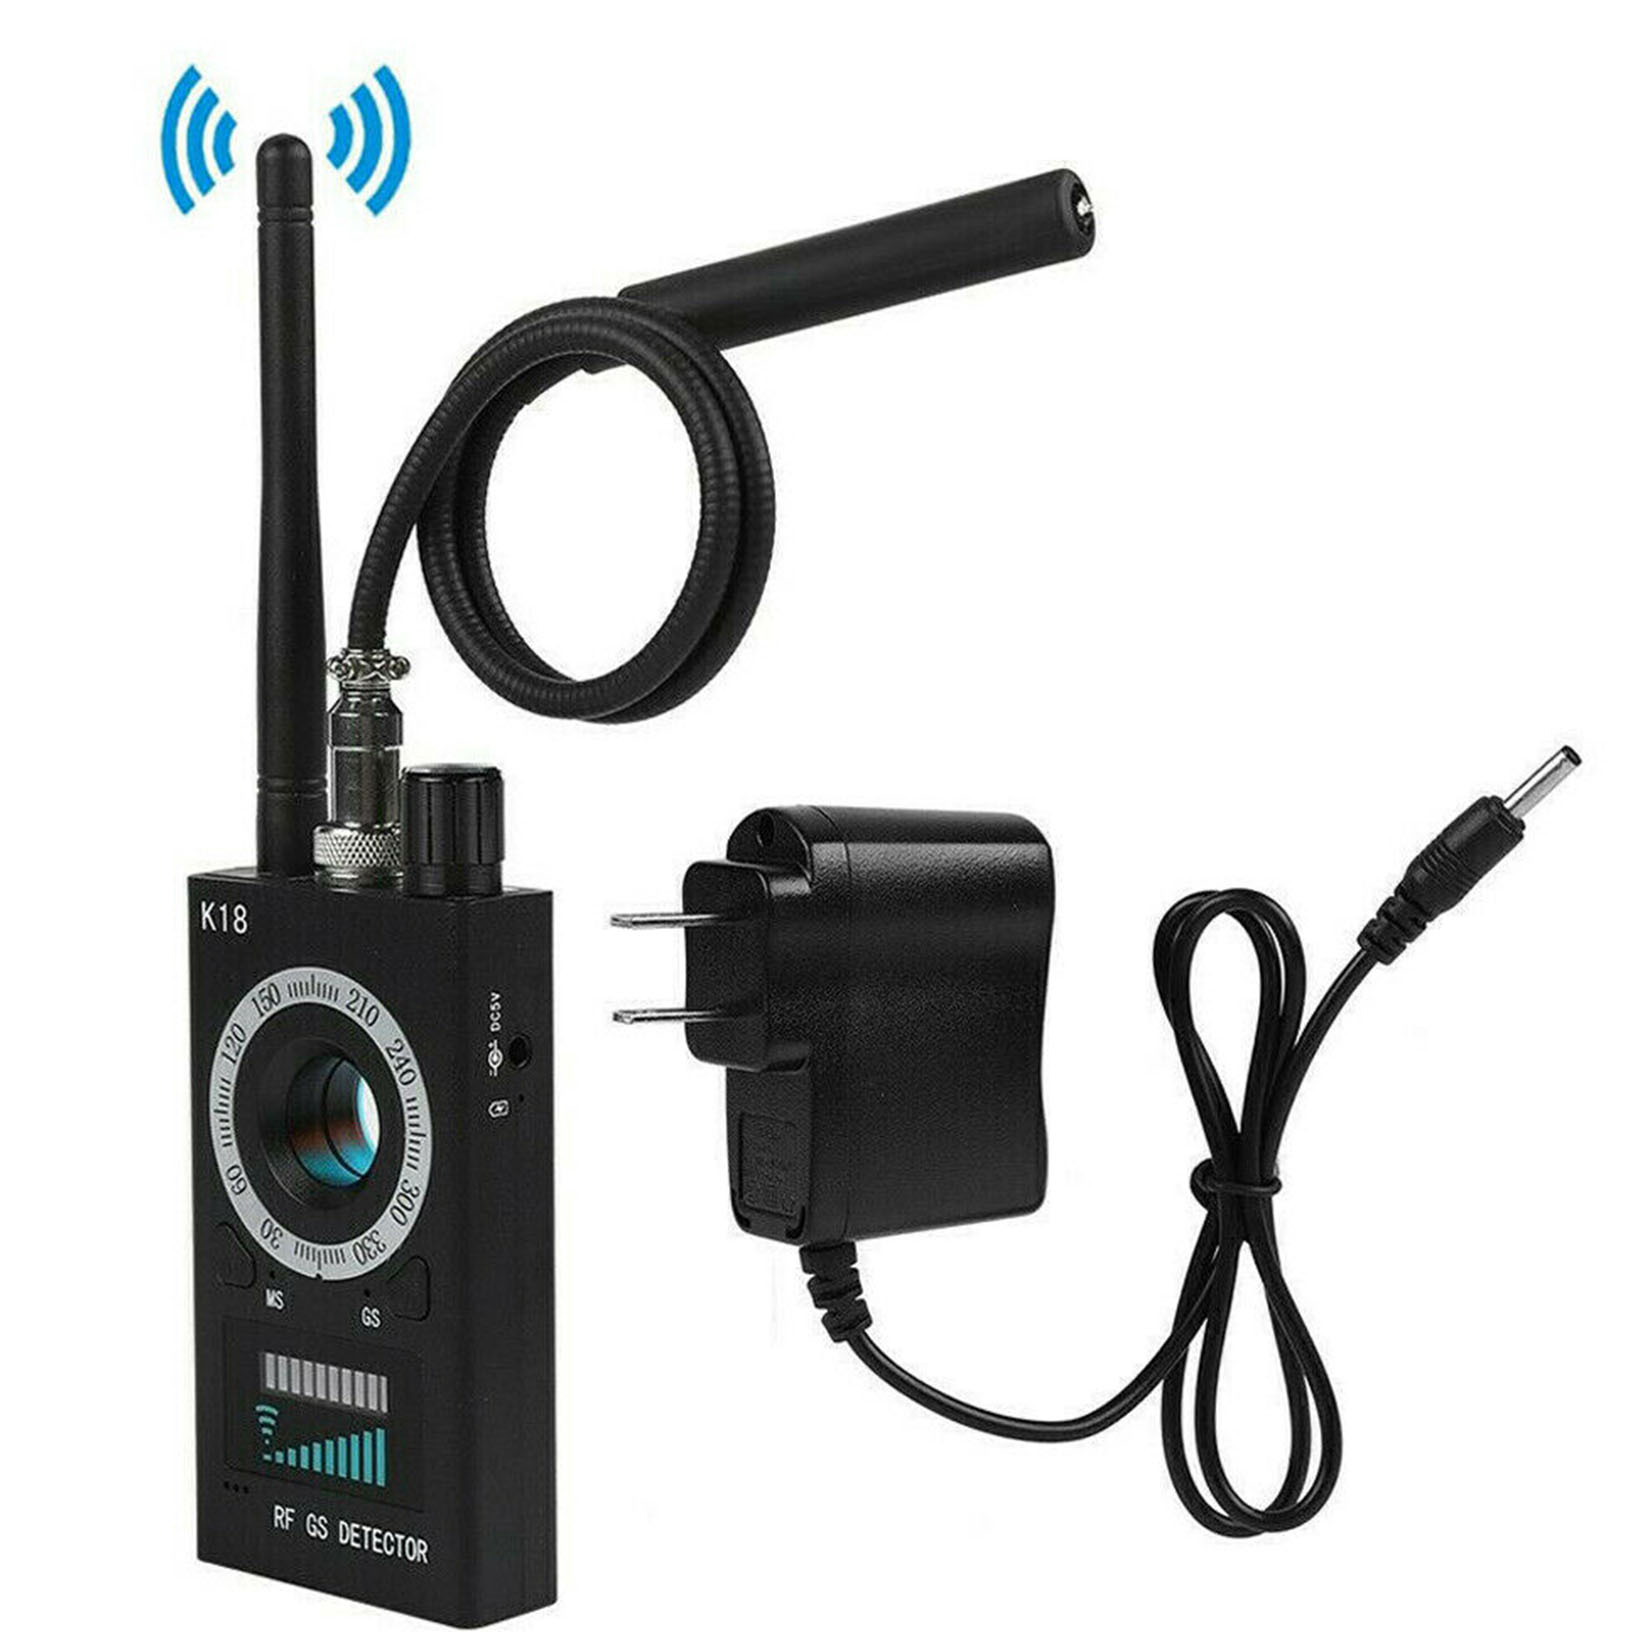 Details about RF Signal detector Anti-spy Detector Camera K18 GSM Audio Bug  Finder GPS Scan